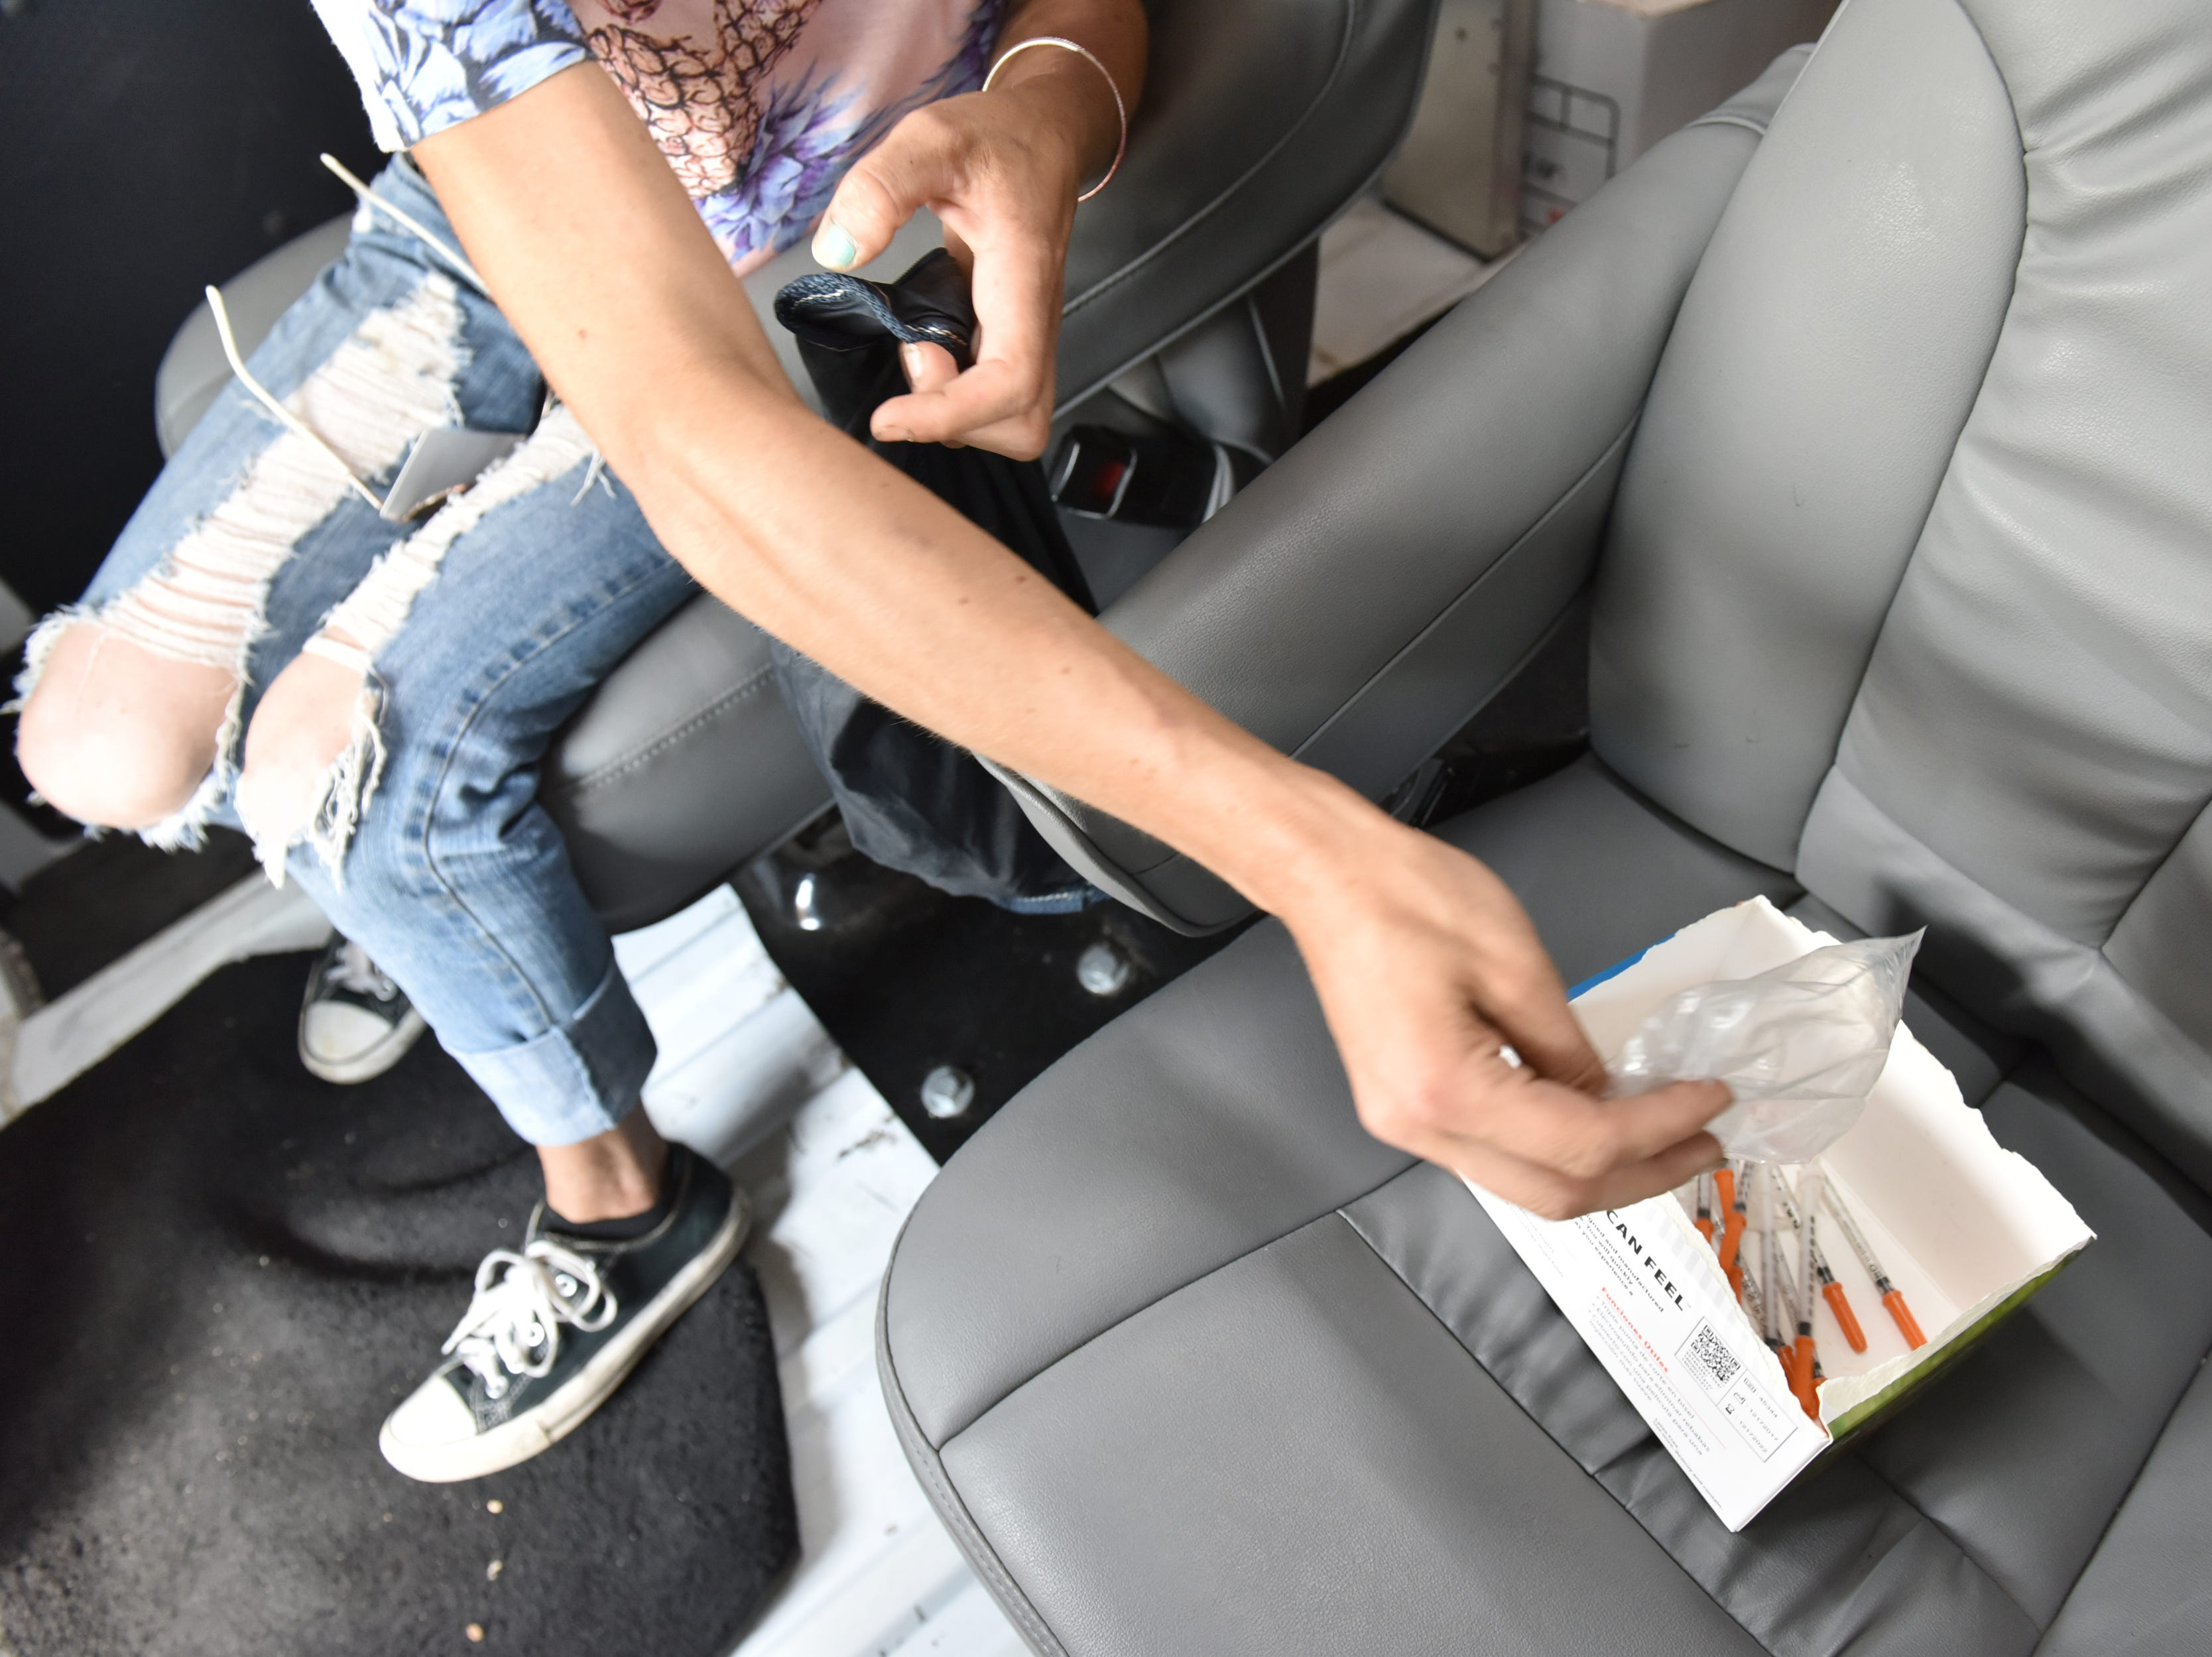 A client drops used syringes into a box to be exchanged. A van parked in the Walgreen's parking lot provides clean needles in exchange for dirty ones twice a week in Paterson on Friday July 27, 2018. For every used syringe brought in, the harm reduction specialists with Hyacinth Foundation provides a new sterile syringe. The van is stocked with syringes of different sizes, alcohol wipes, constriction bands, cooking cups, water, strips to test for fentanyl, and other products to safely inject heroin.